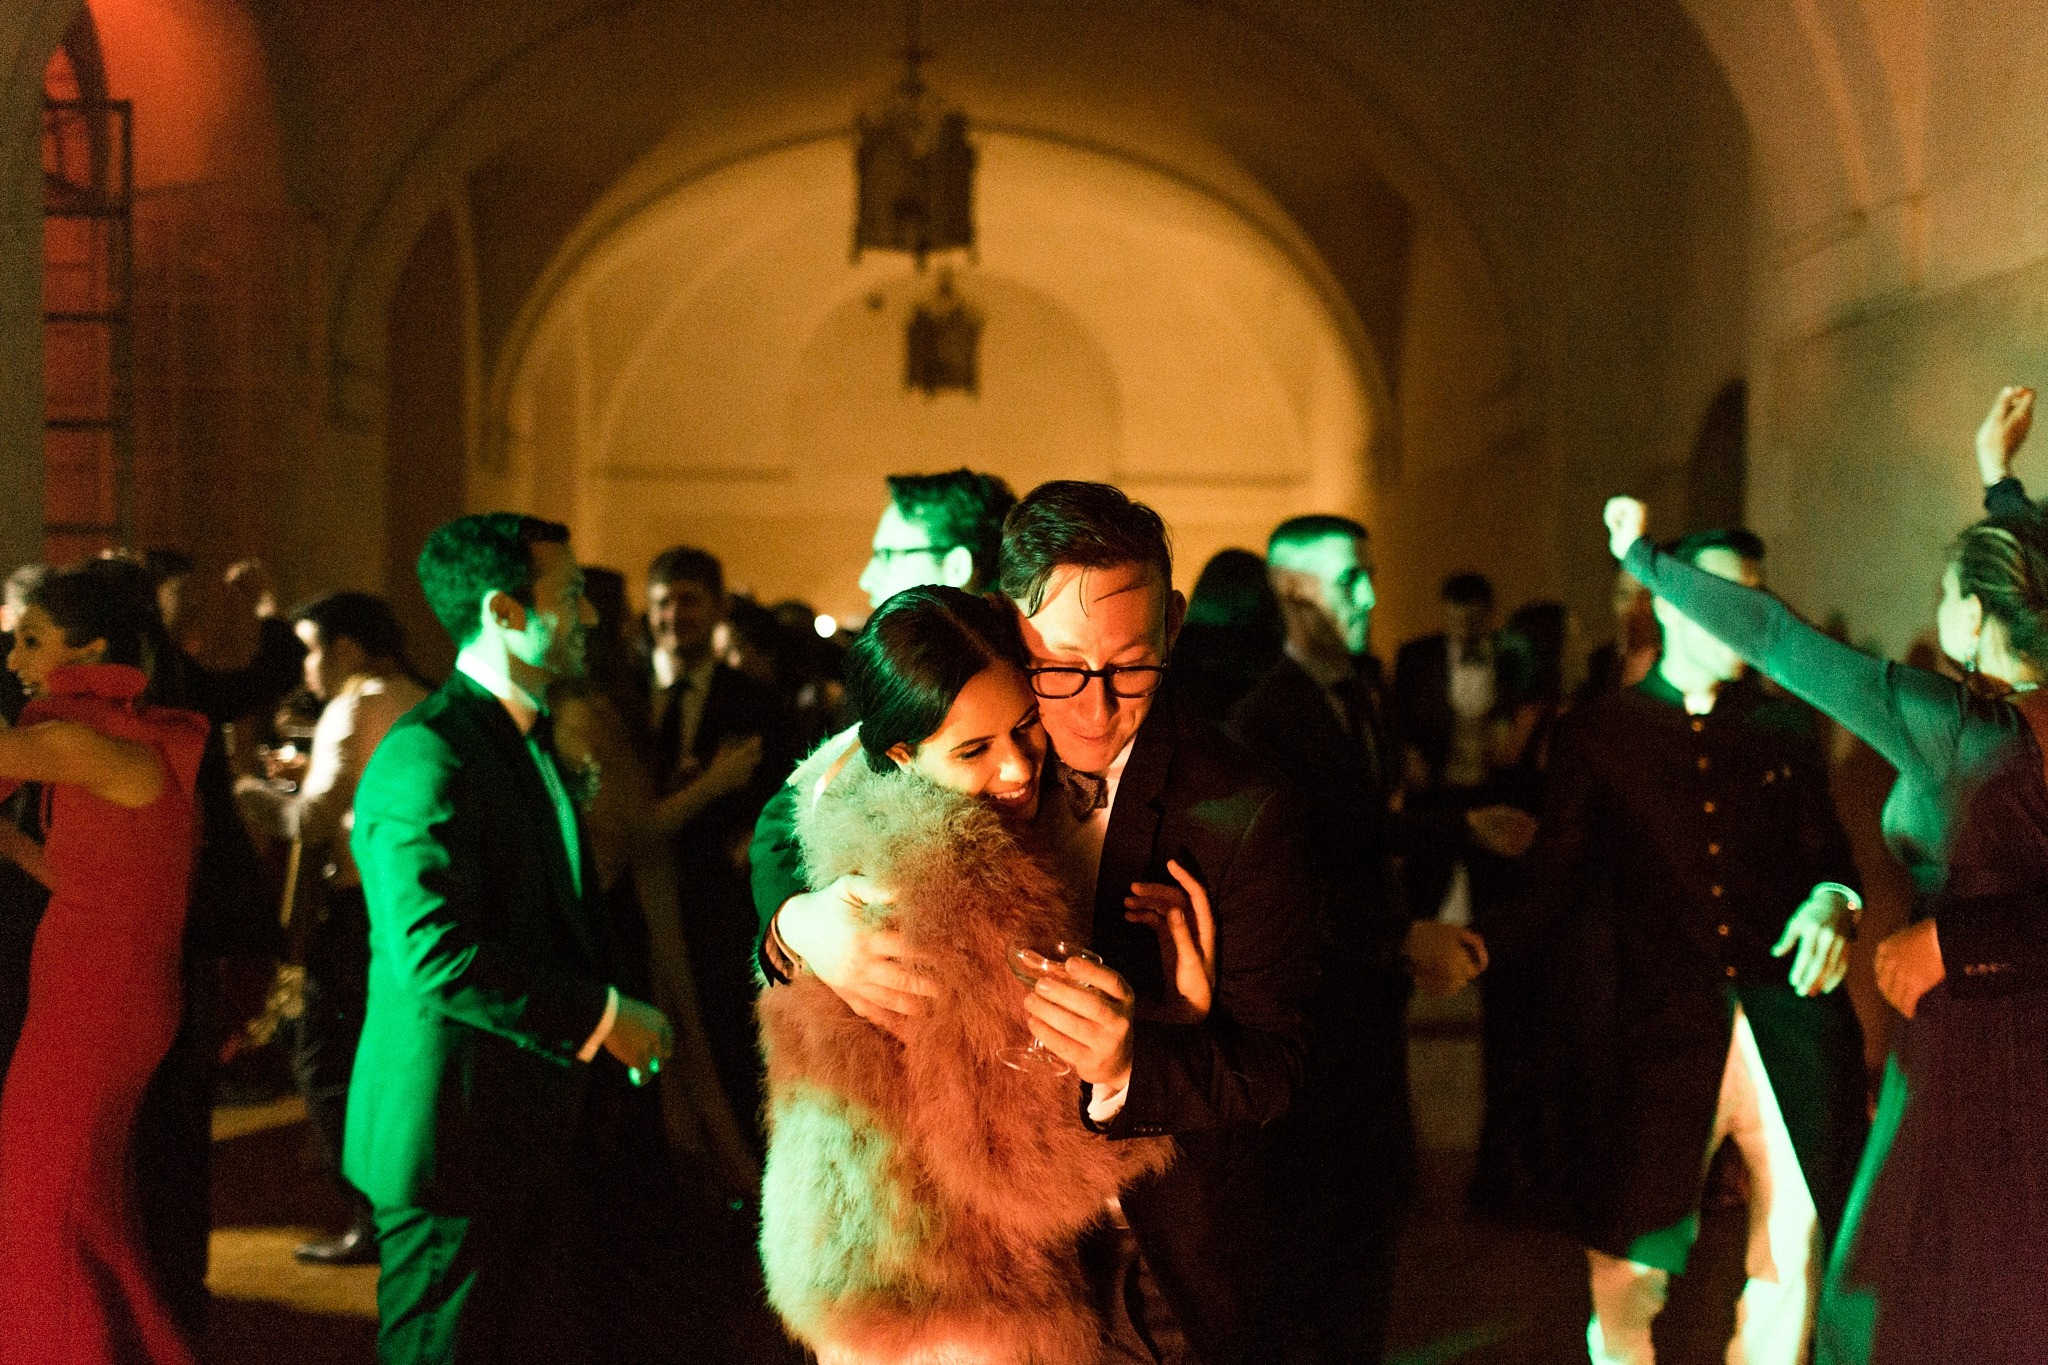 chateau-wedding-france-chanel-eric-as-seen-on-vogue-with-sarah-falugo-photographer_0136